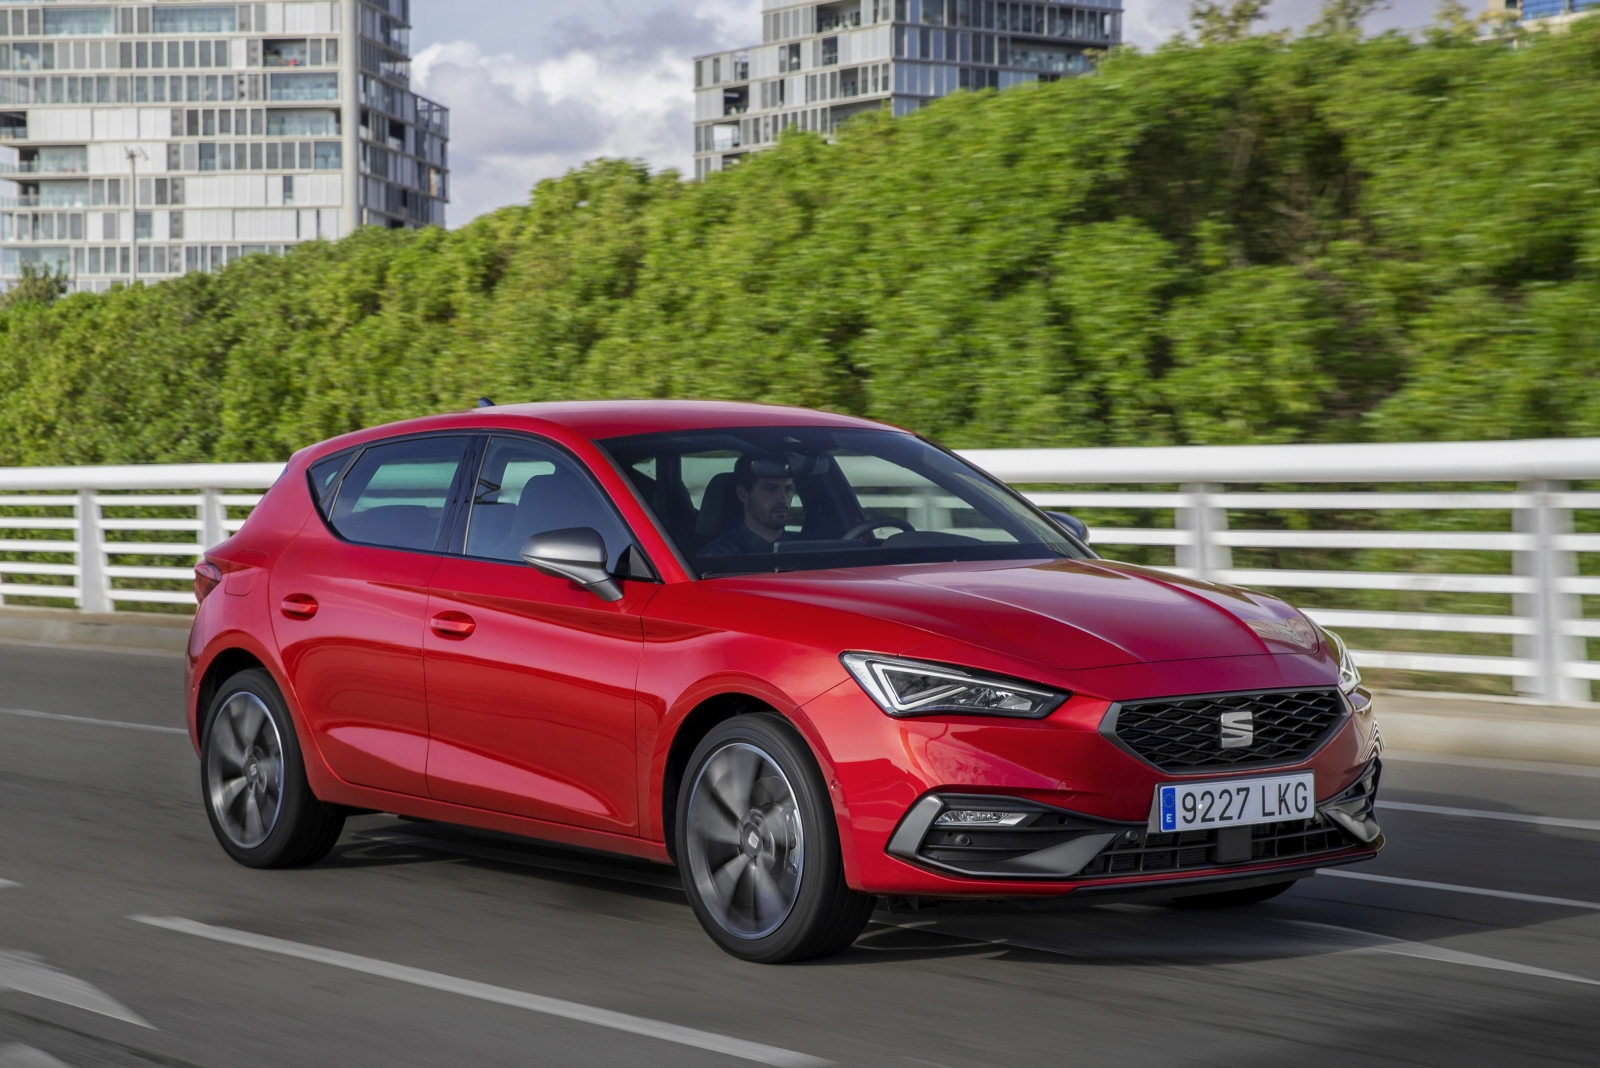 All-new-SEAT-Leon-achieves-five-star-rating-in-the-new-and-stricter-Euro-NCAP-safety-test_01_HQ